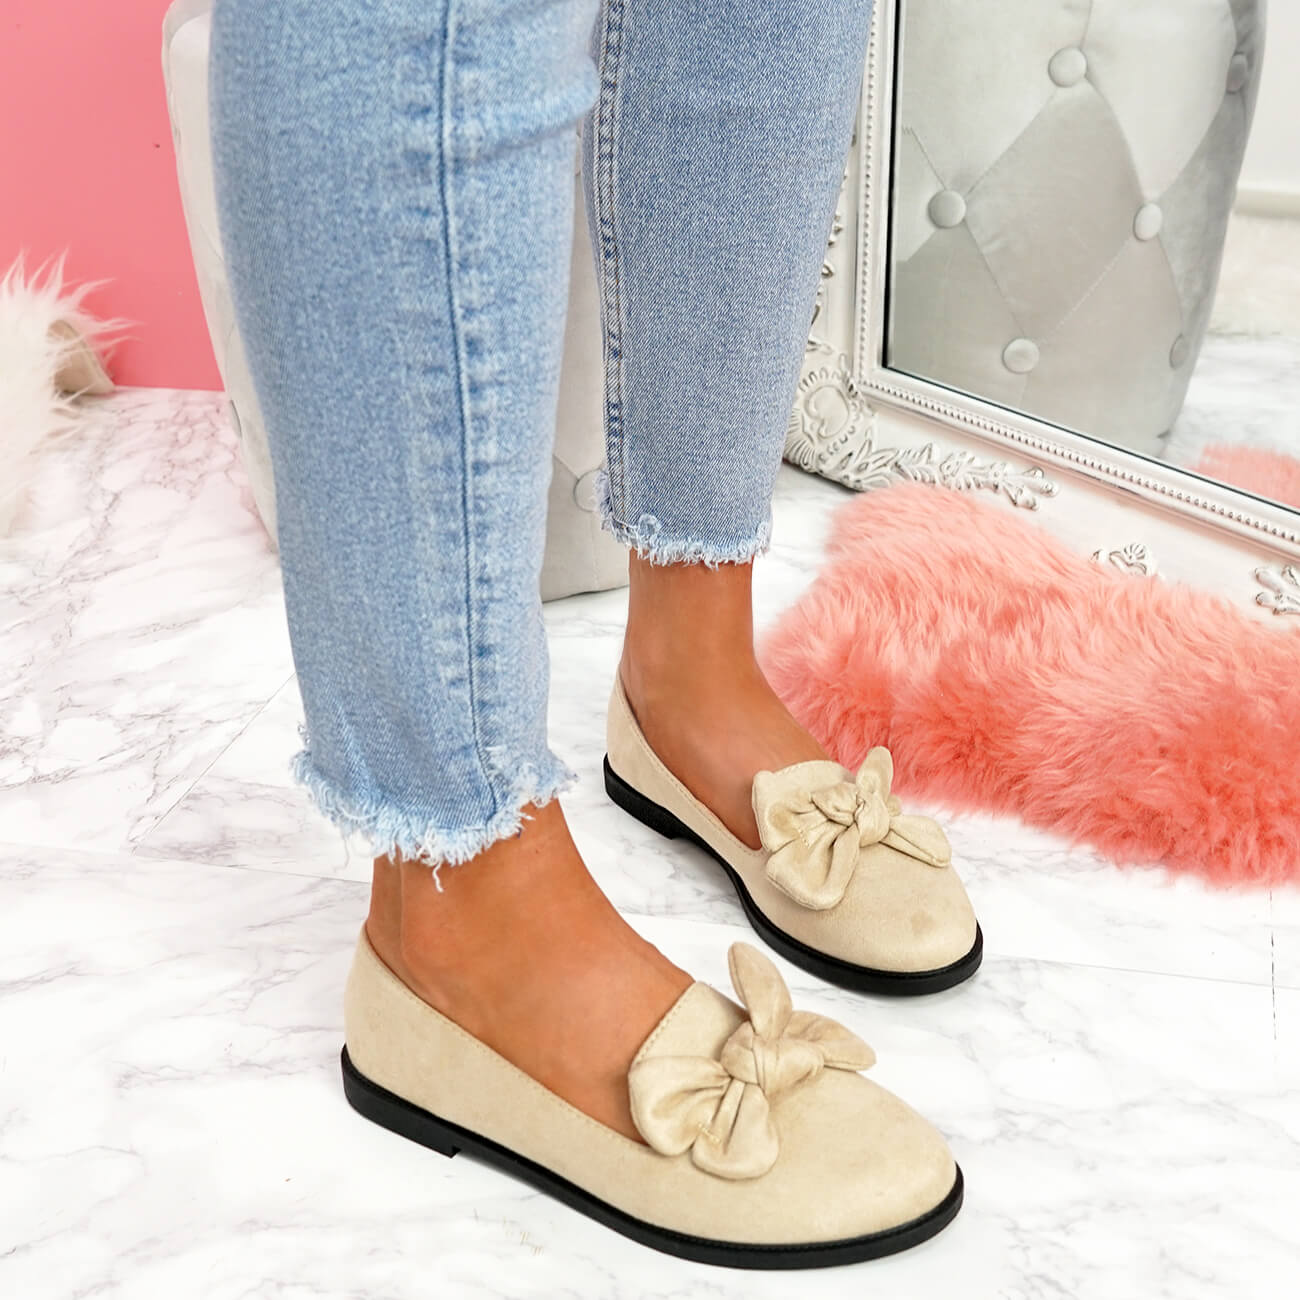 WOMENS-LADIES-BOW-BALLERINA-PUMPS-FLATS-SLIP-ON-BALLET-CASUAL-WORK-SHOES-SIZE thumbnail 9